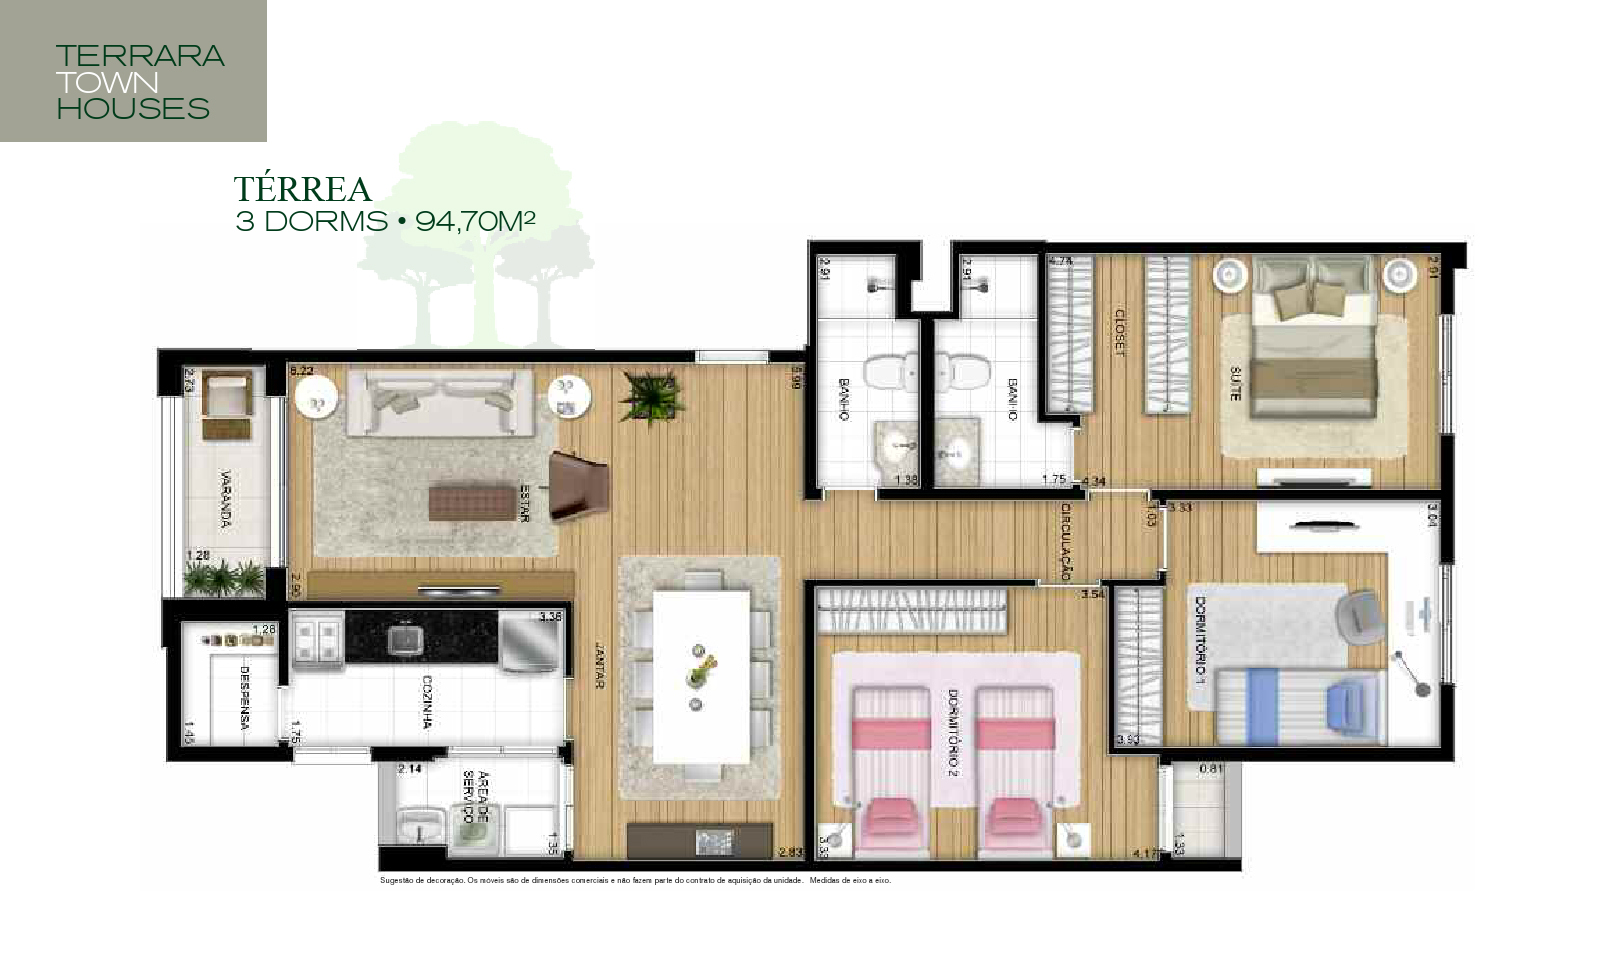 TownHouse Térrea 94m²